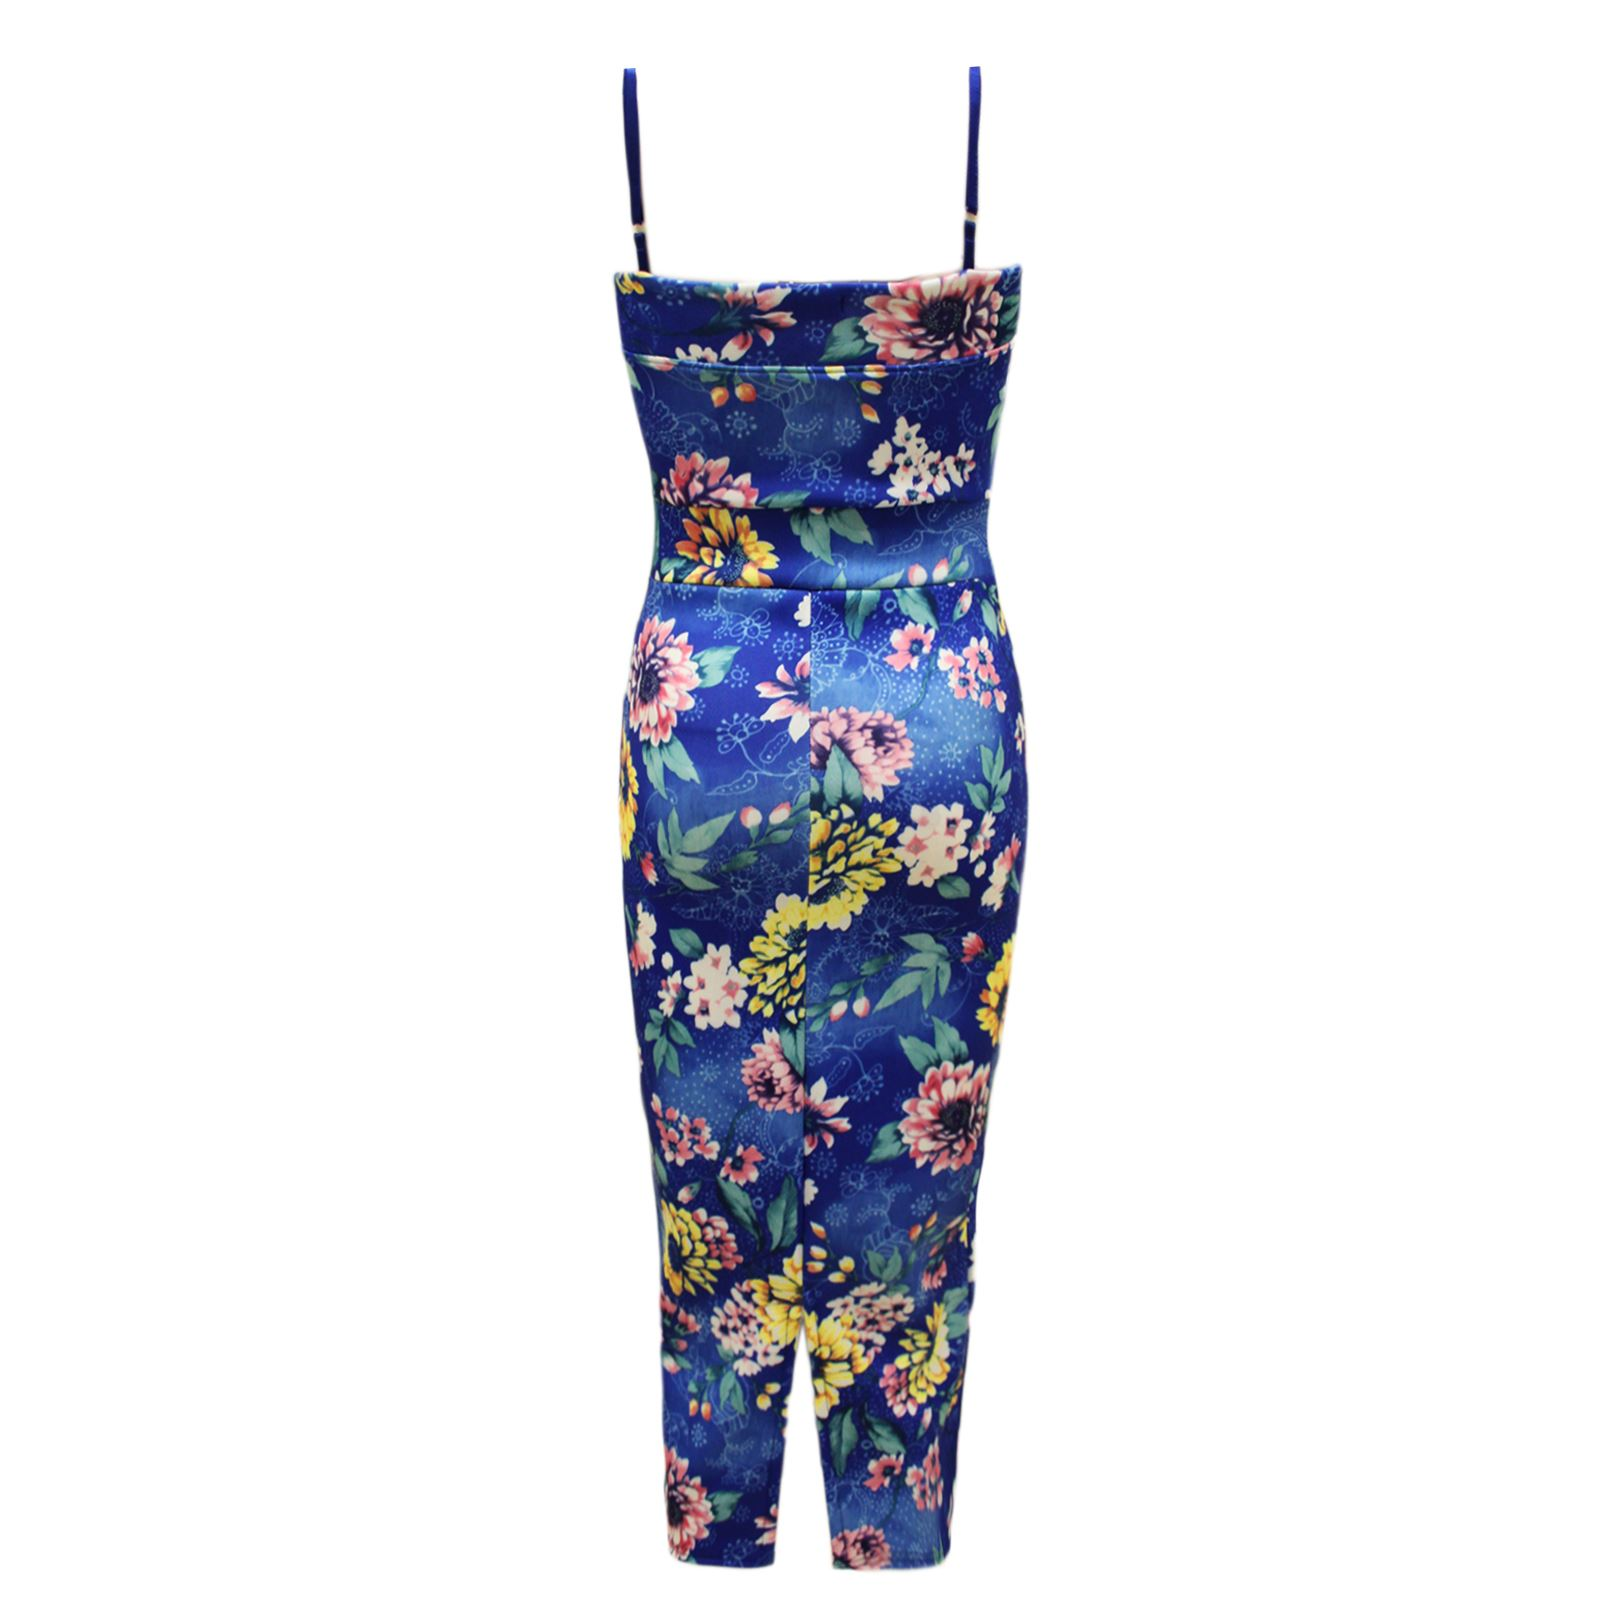 LADIES-WOMENS-CELEB-STYLE-STRAPPY-TROPICAL-FLORAL-PRINT-PARTY-BODYCON-MIDI-DRESS